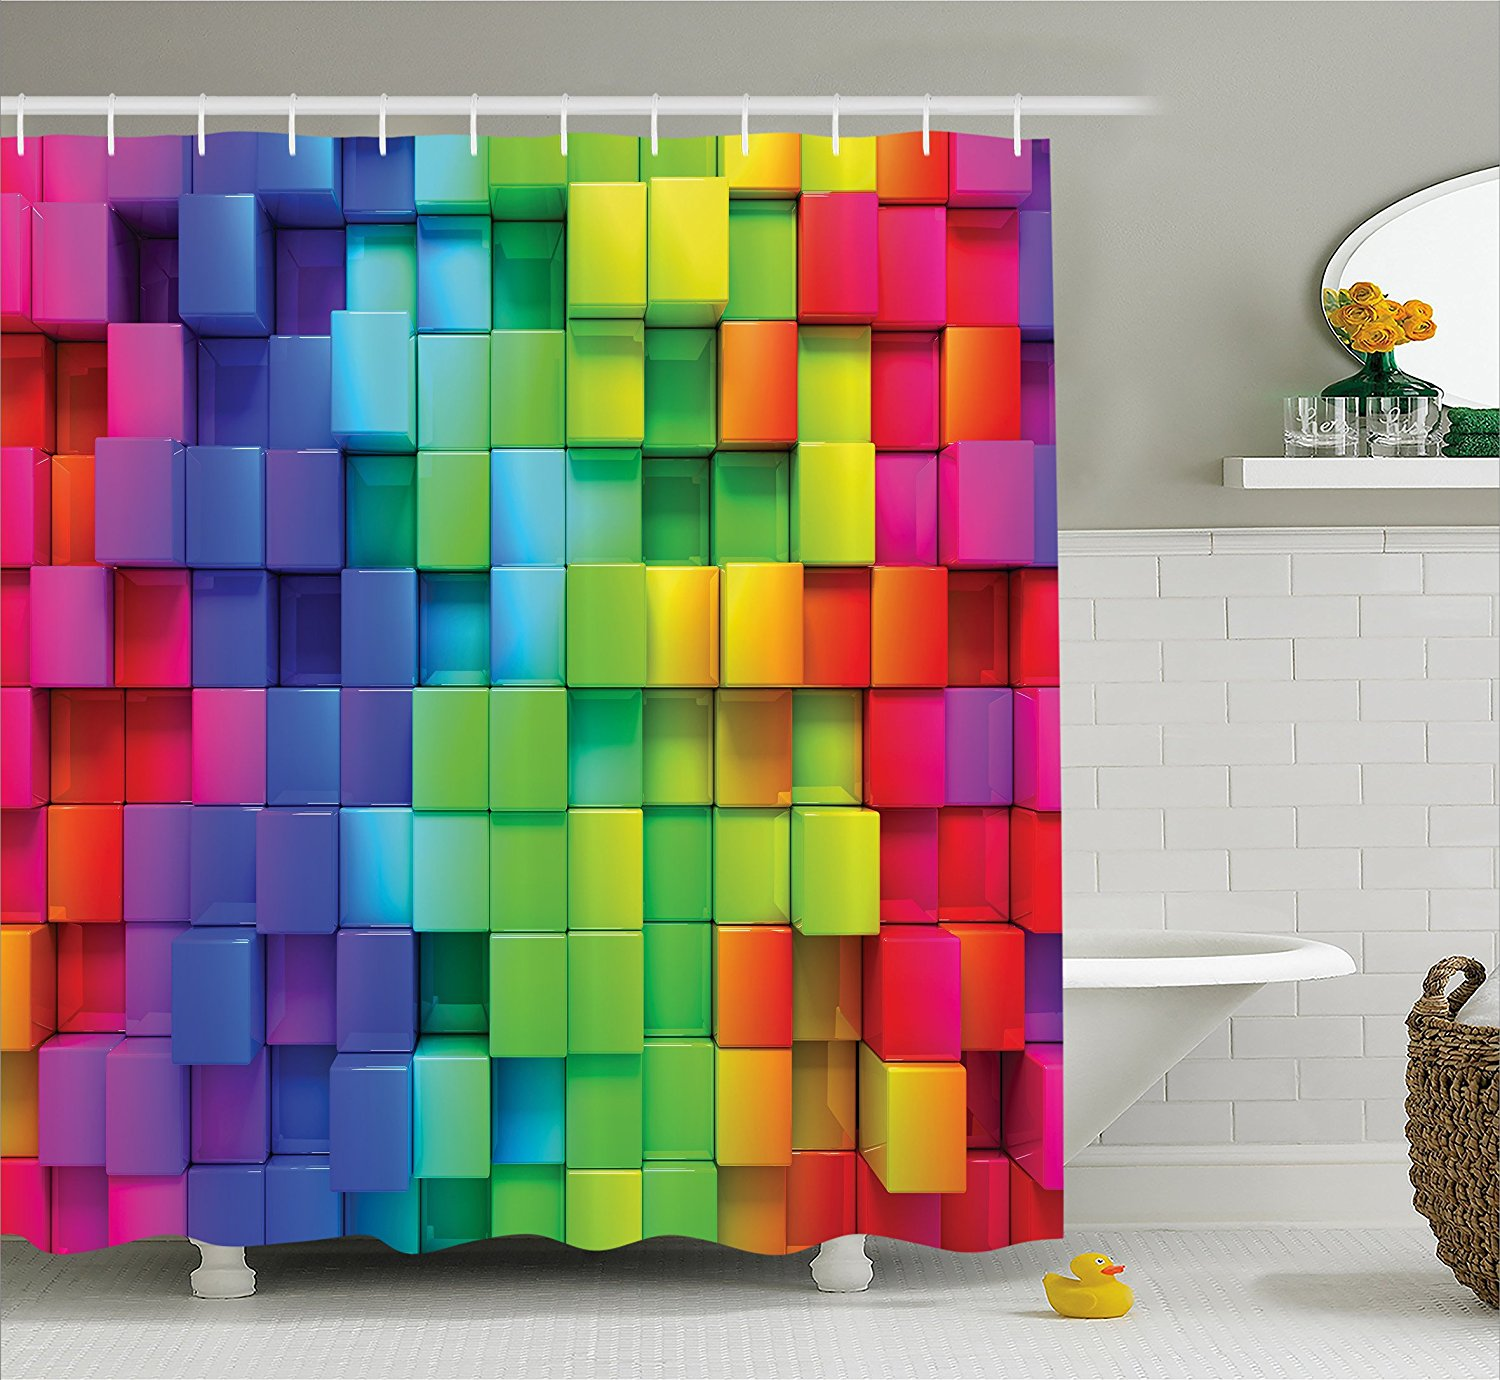 US $14.37 36% OFF|Colorful Home Decor Shower Curtain Rainbow Color on painted bathtub, painted patio designs, painted chairs designs, painted floor designs, painted table designs, painted furniture designs, painted photography, painted boat designs, painted closets, painted door designs, painted carpet designs, painted glass designs, painted room designs, painted porch designs, painted christmas designs, painted fireplace designs, painted bedroom, painted window designs, painted cabinet designs, painted car designs,